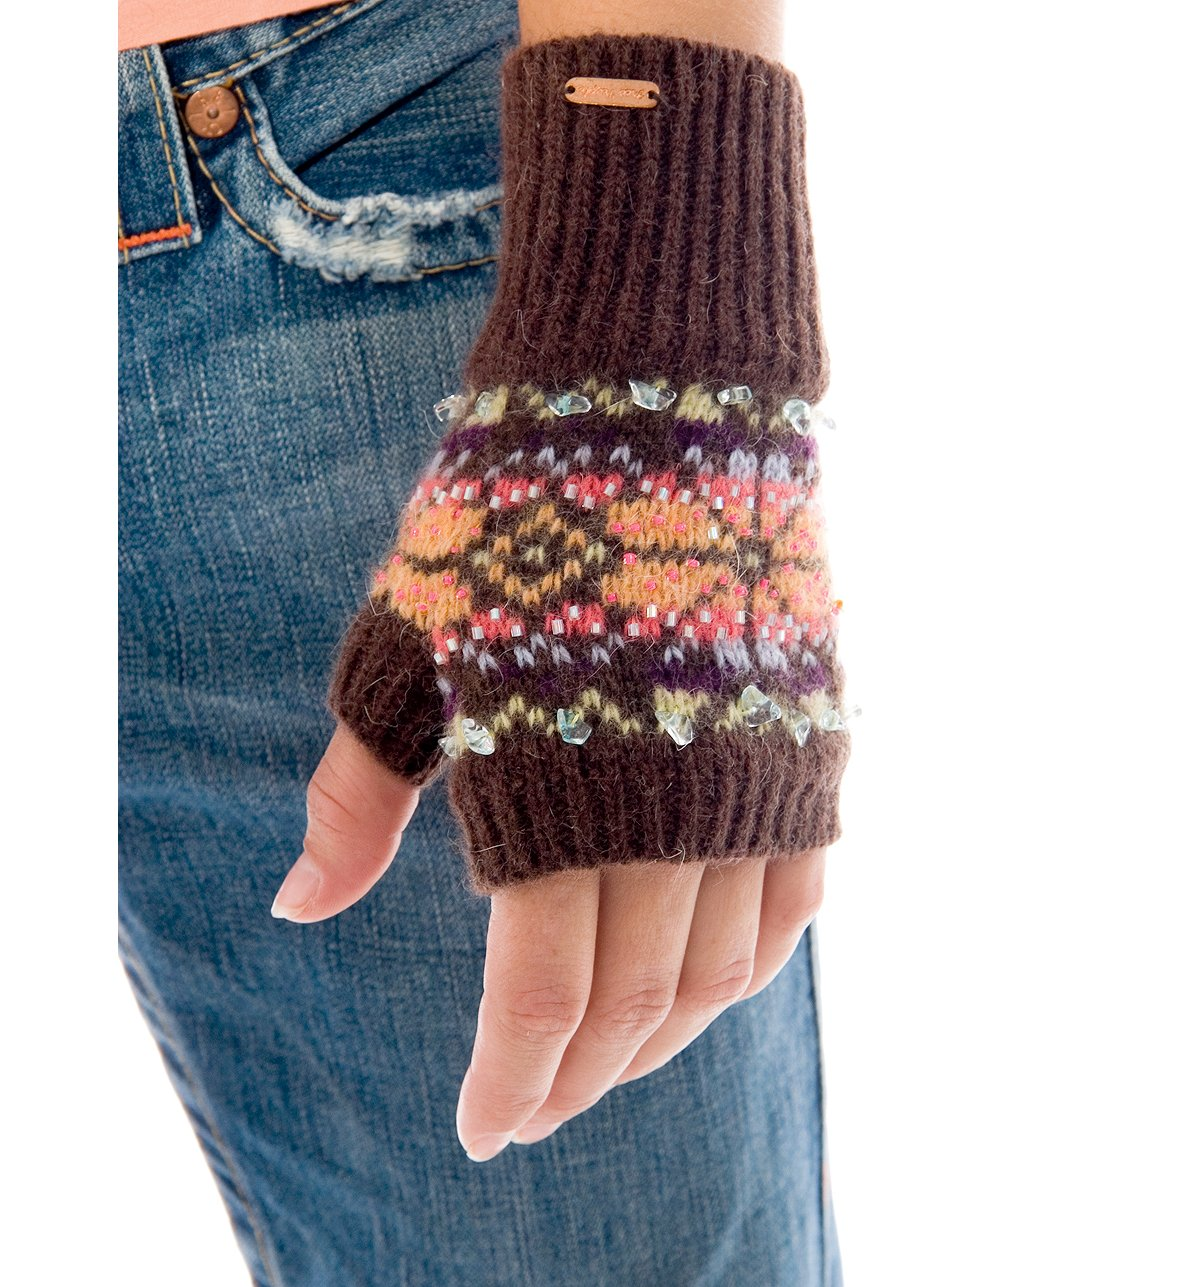 --Snowflake Fingerless Glove